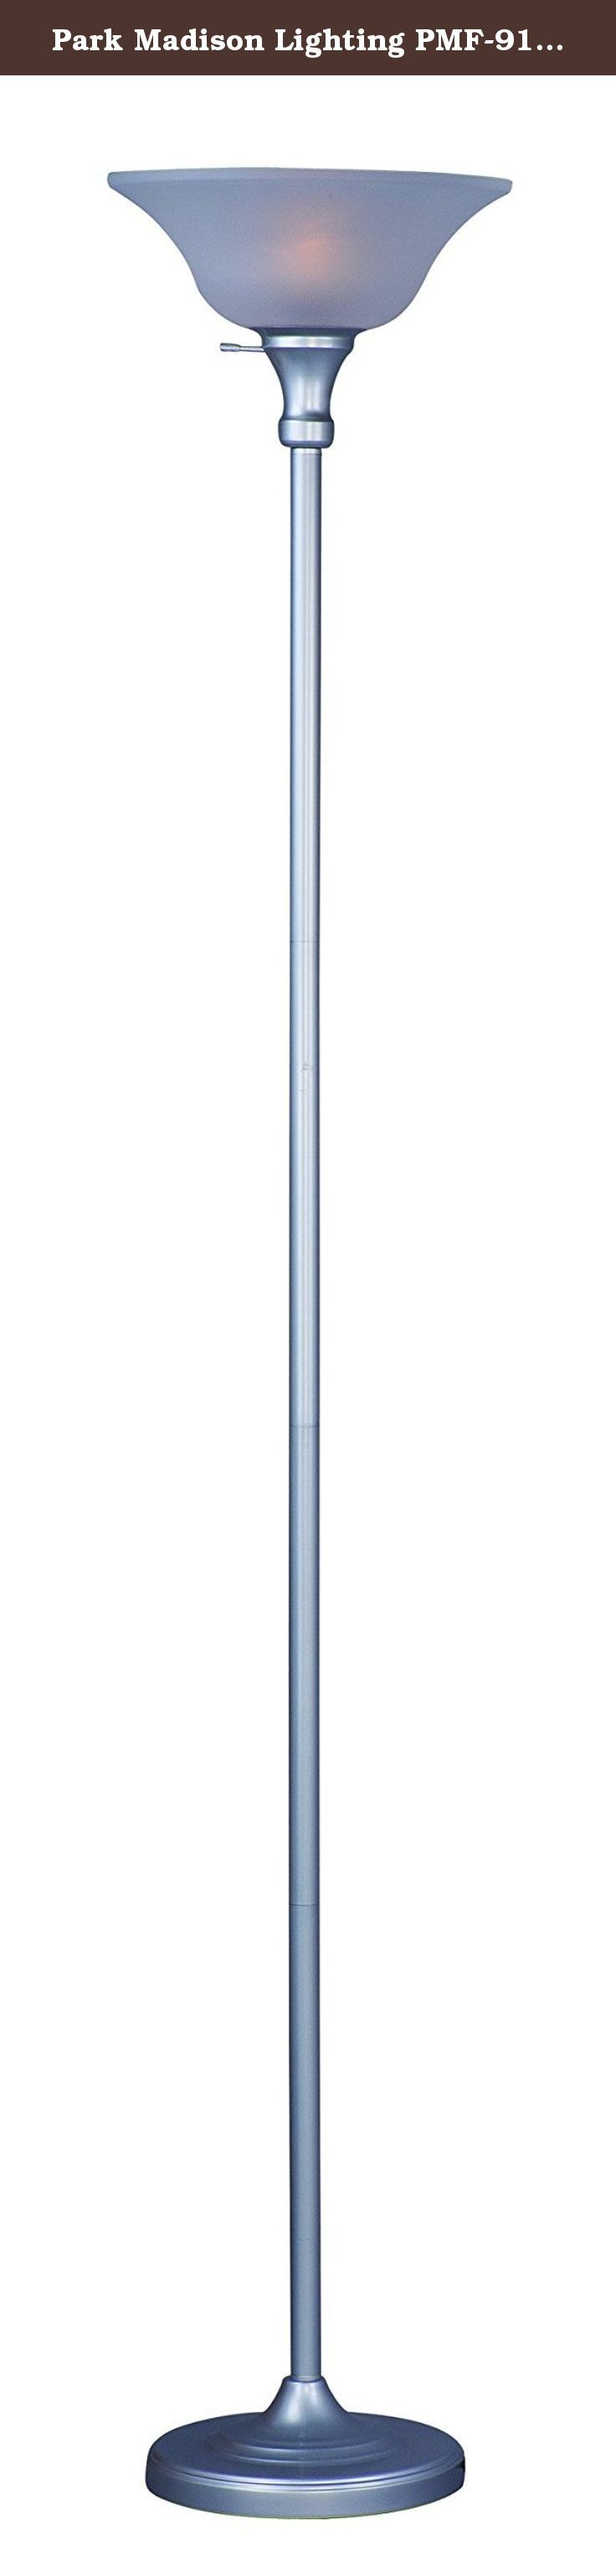 Park Madison Lighting PMF-9171-60 150 Watt Incandescent Torchiere Floor Lamp, 72 inches High in Silver Finish with Frosted Shade, Transitional Design. This 150 watt capacity 72 inch tall incandescent torcher floor lamp has a thicker column than your standard floor lamp and is perfect as a general lighting piece. It features a transitional design, a gorgeous silver finish with a frosted shade and a 3-way switch. It is ETL listed, uses a 3 way 50-100-150 watt or a CFL26 watt bulb and the…